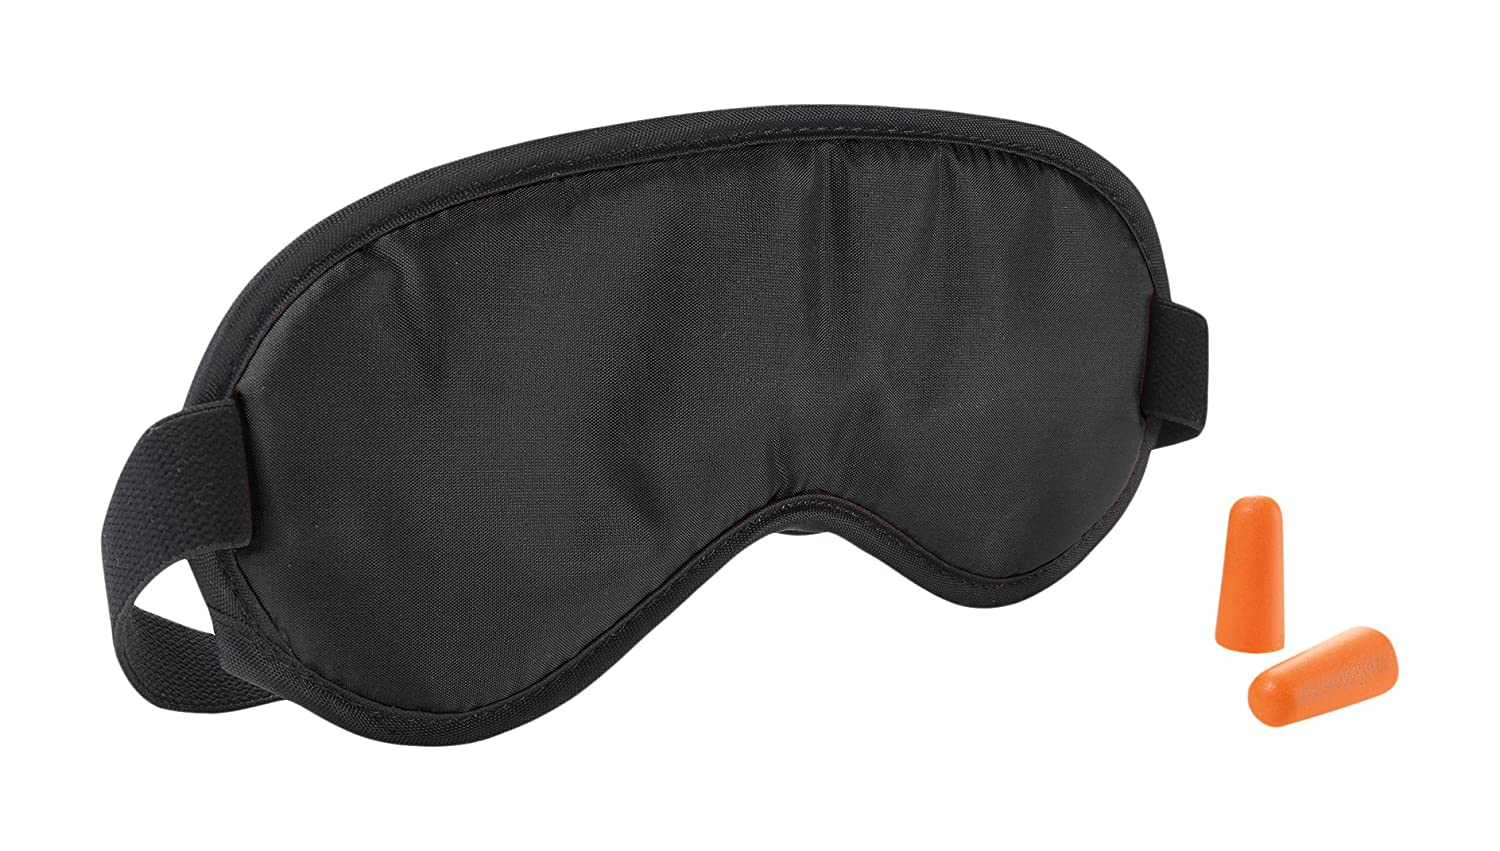 e8a6937ff Amazon.com  Travel Smart by Conair Eye Mask and Earplug Set  Black  Health    Personal Care